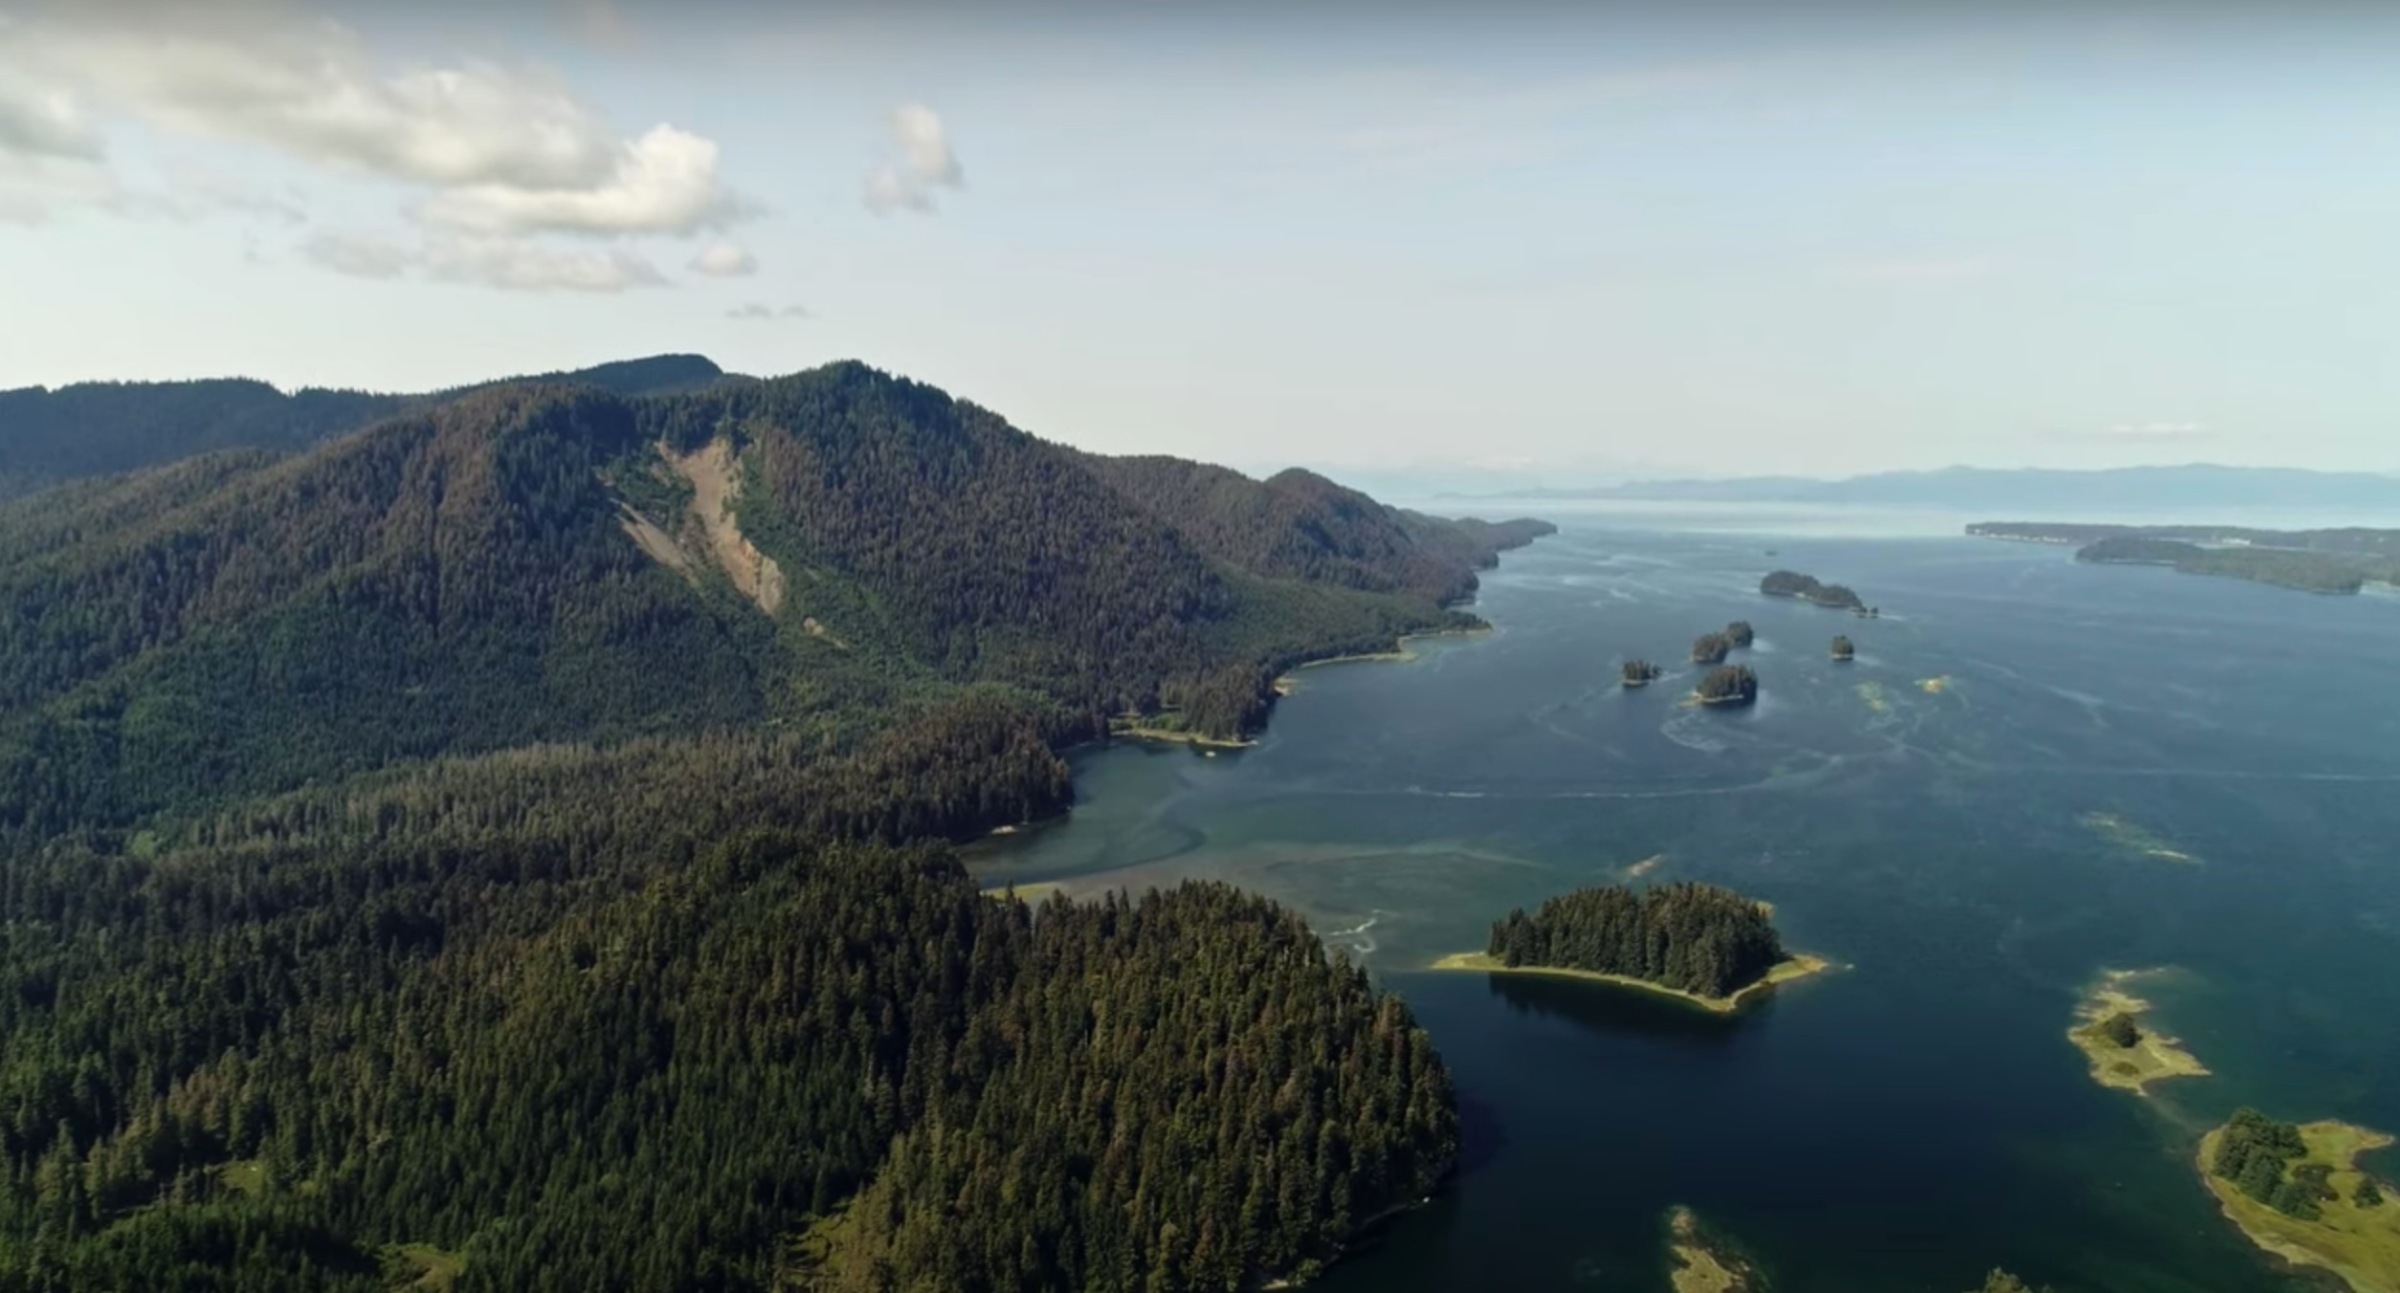 A coastal section of the Tongass National Forest